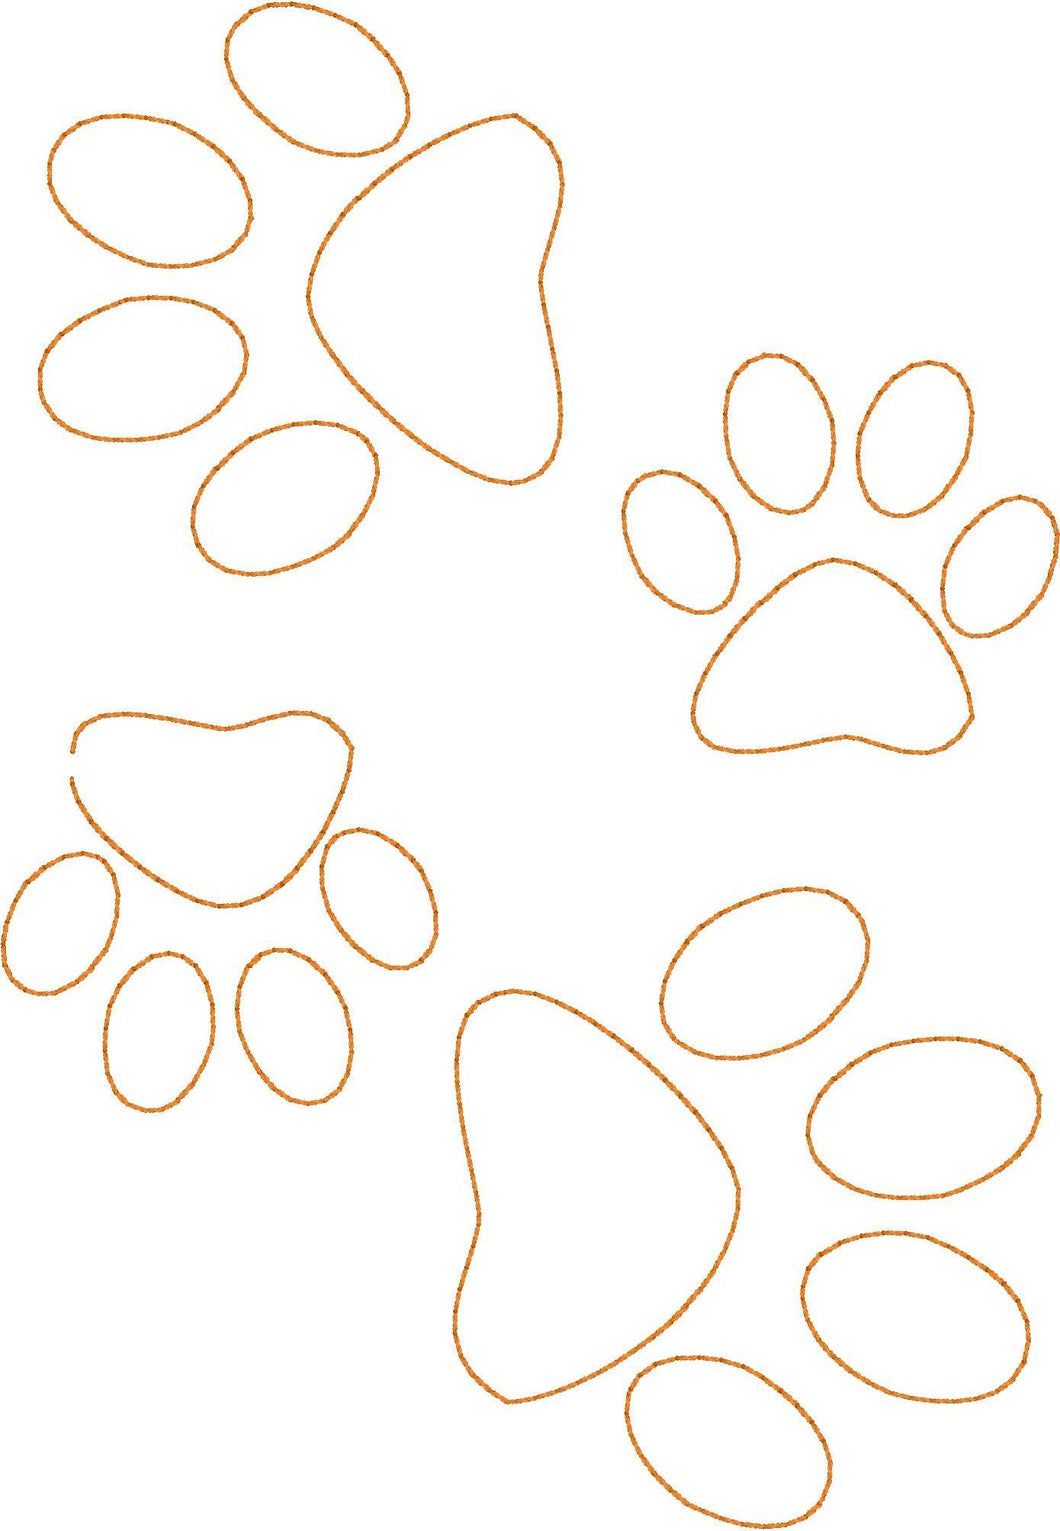 Paw Prints Allover - Machine Embroidery Quilting Design - 5x7 Hoop - Beachside Knits N Quilts